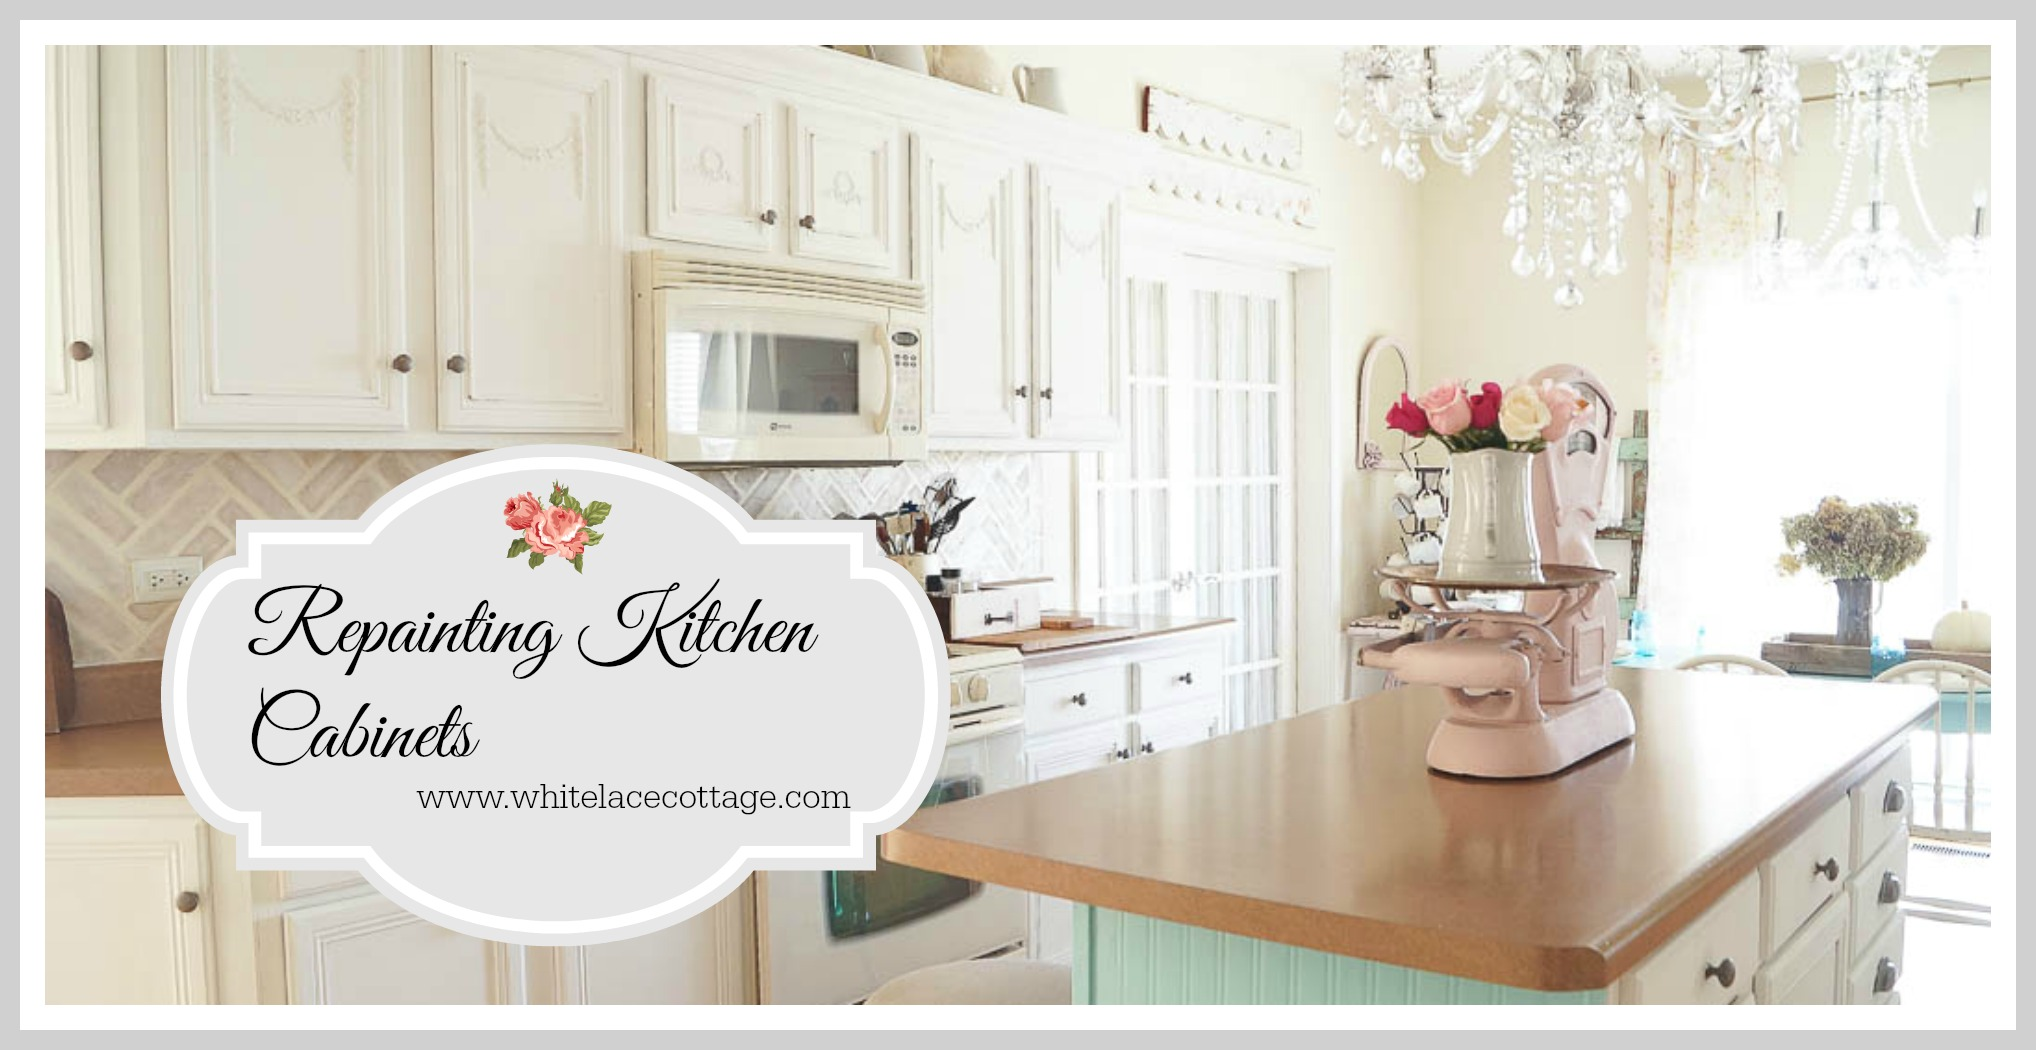 Repainting kitchen cabinets and a giveaway white lace for Repainting white kitchen cabinets